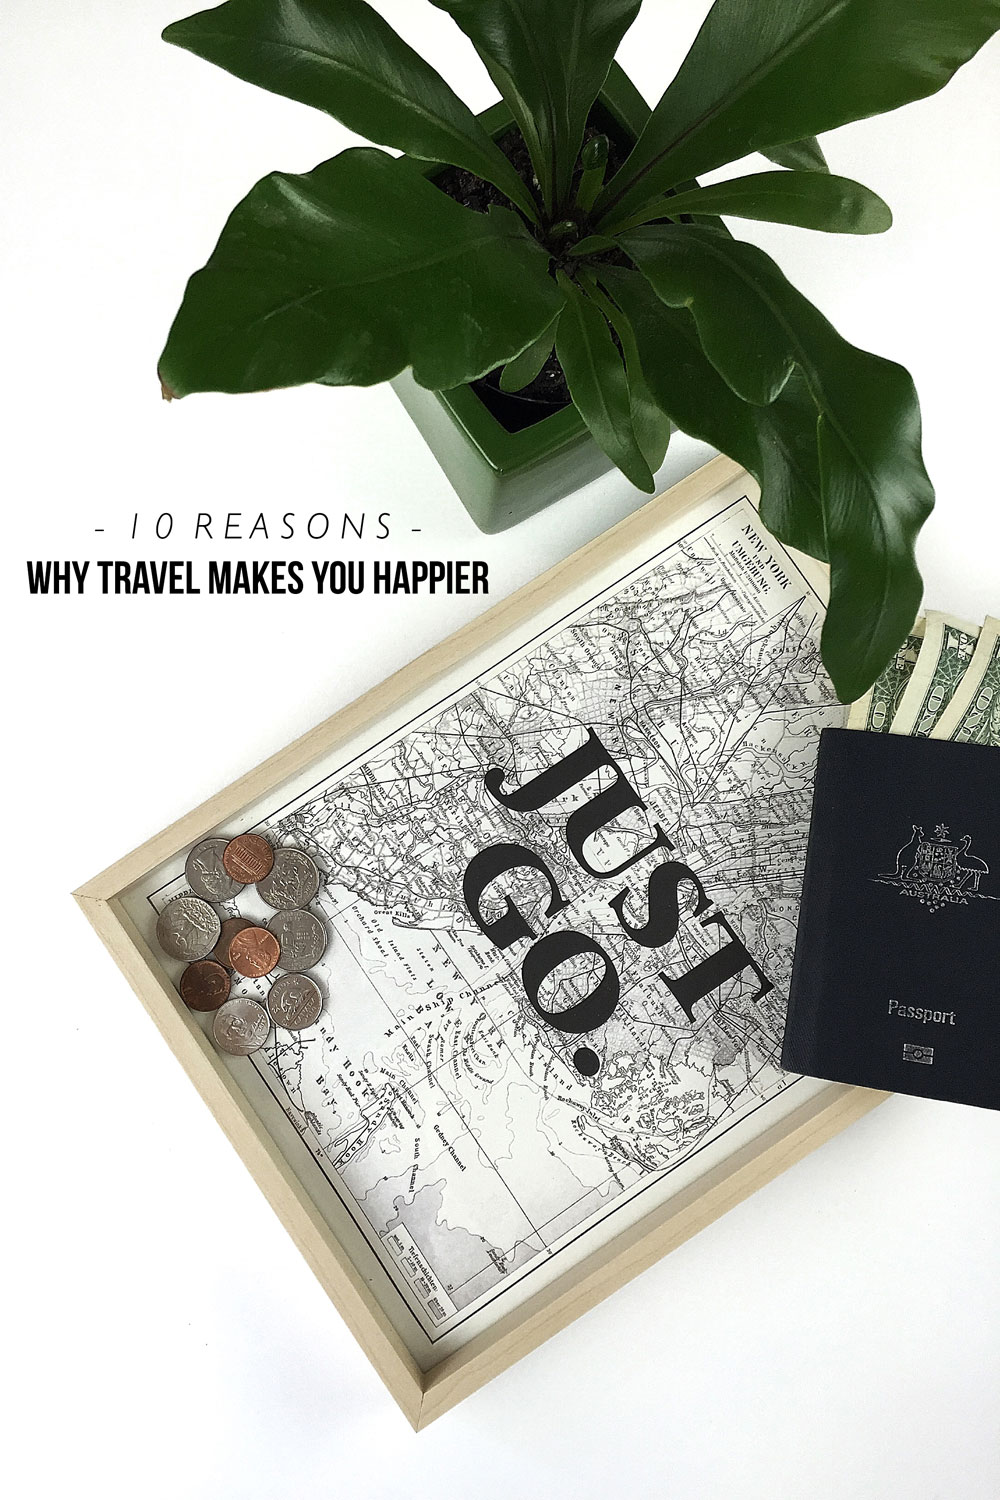 10 Reasons Why Travel Makes You Happier